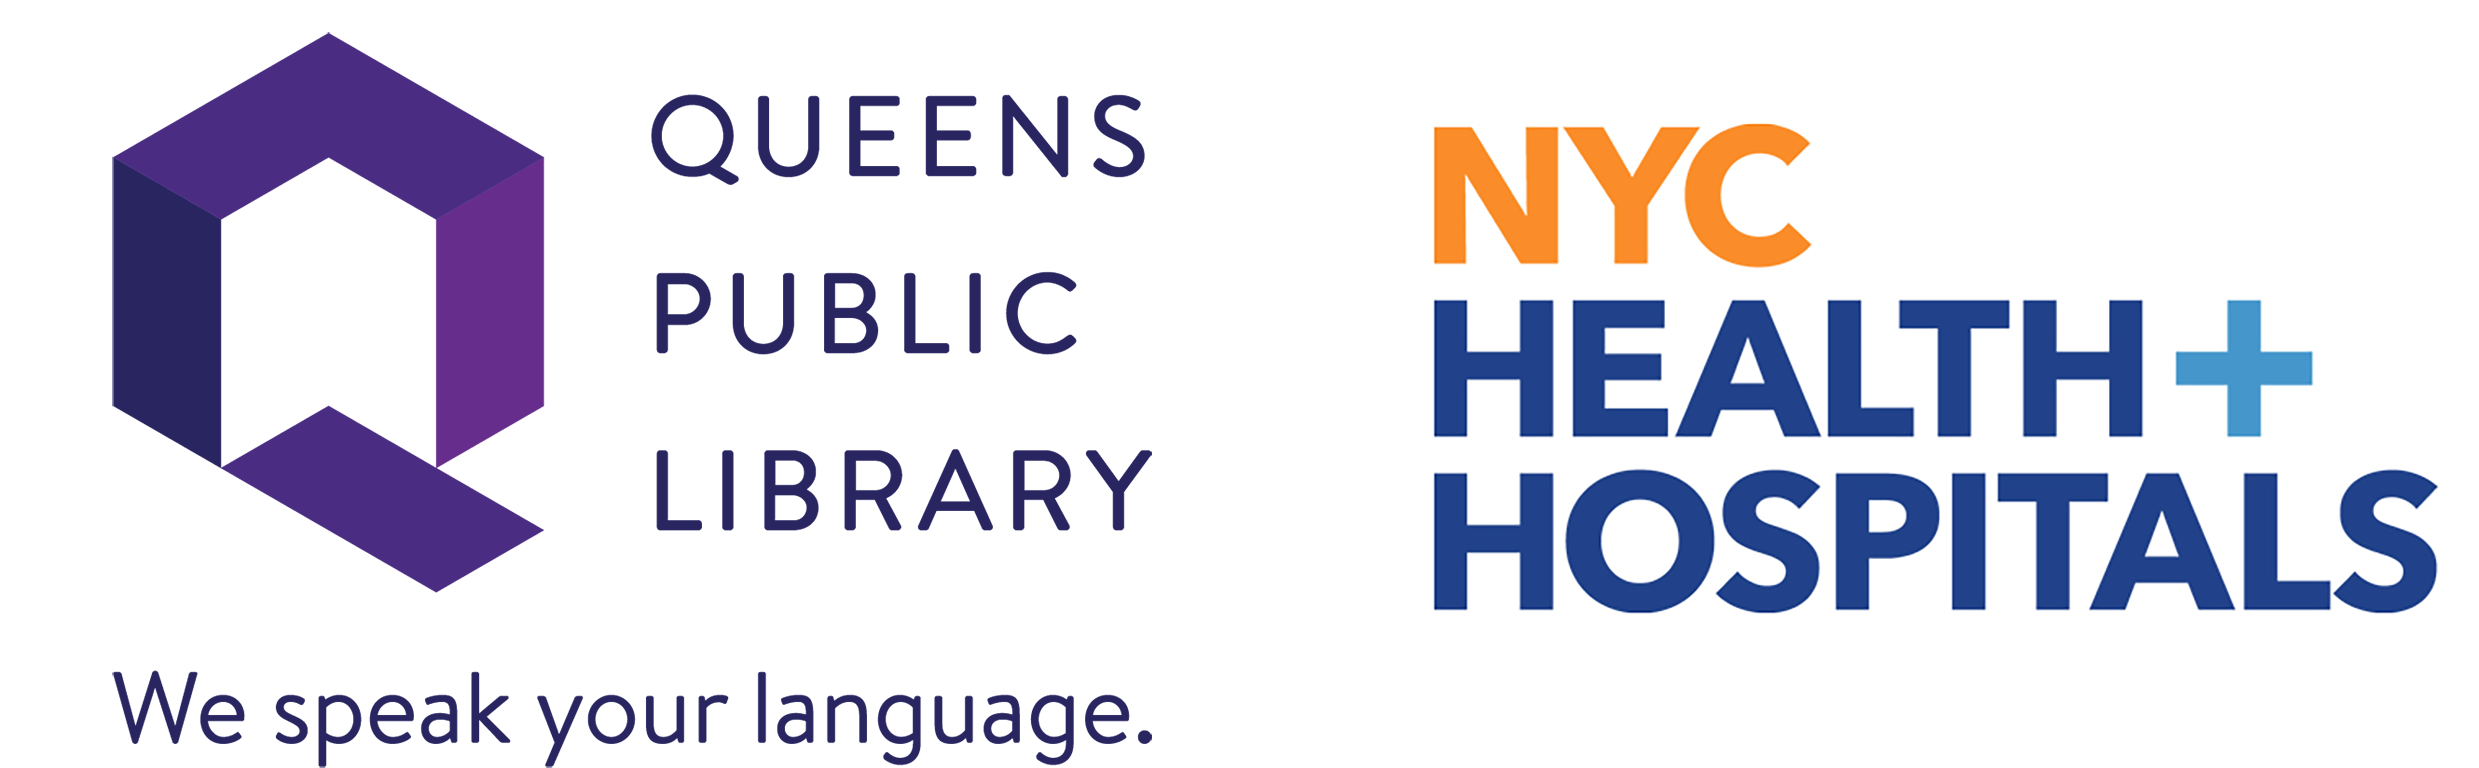 Queens Public Library Partners with NYC Health + Hospitals